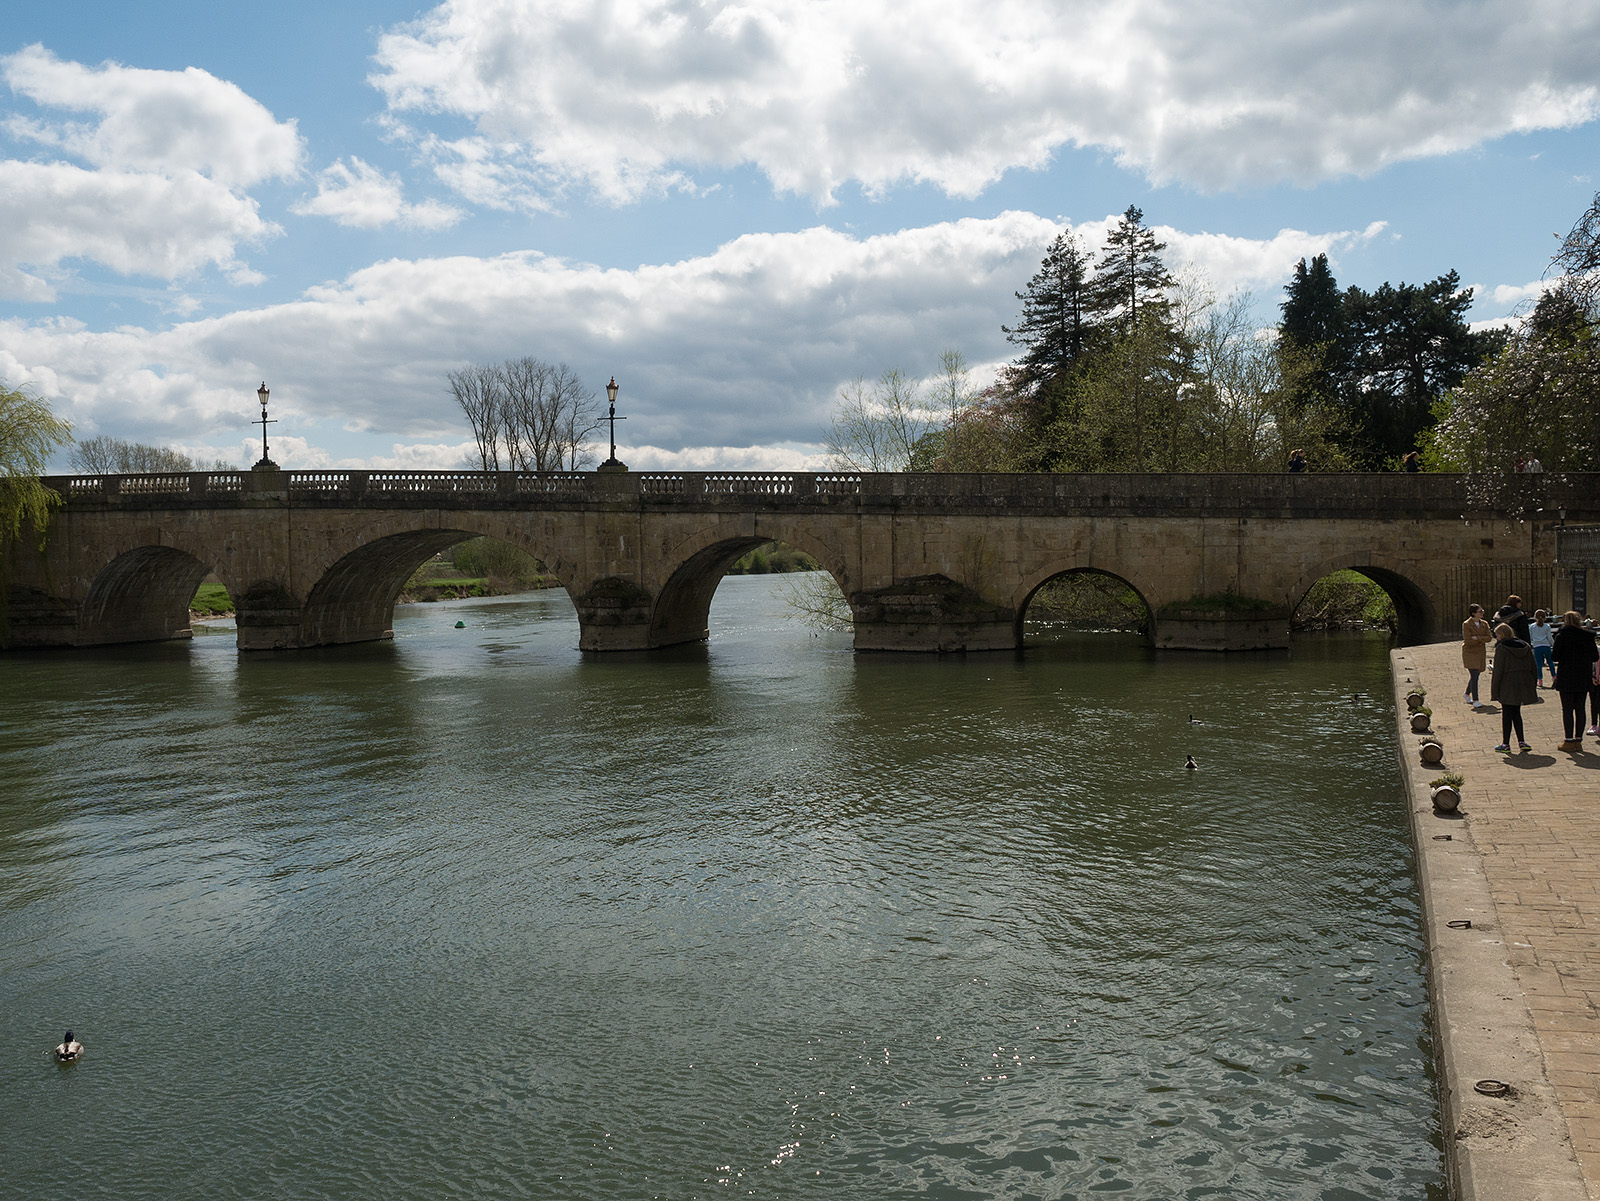 Wallingford bridge (looking back).